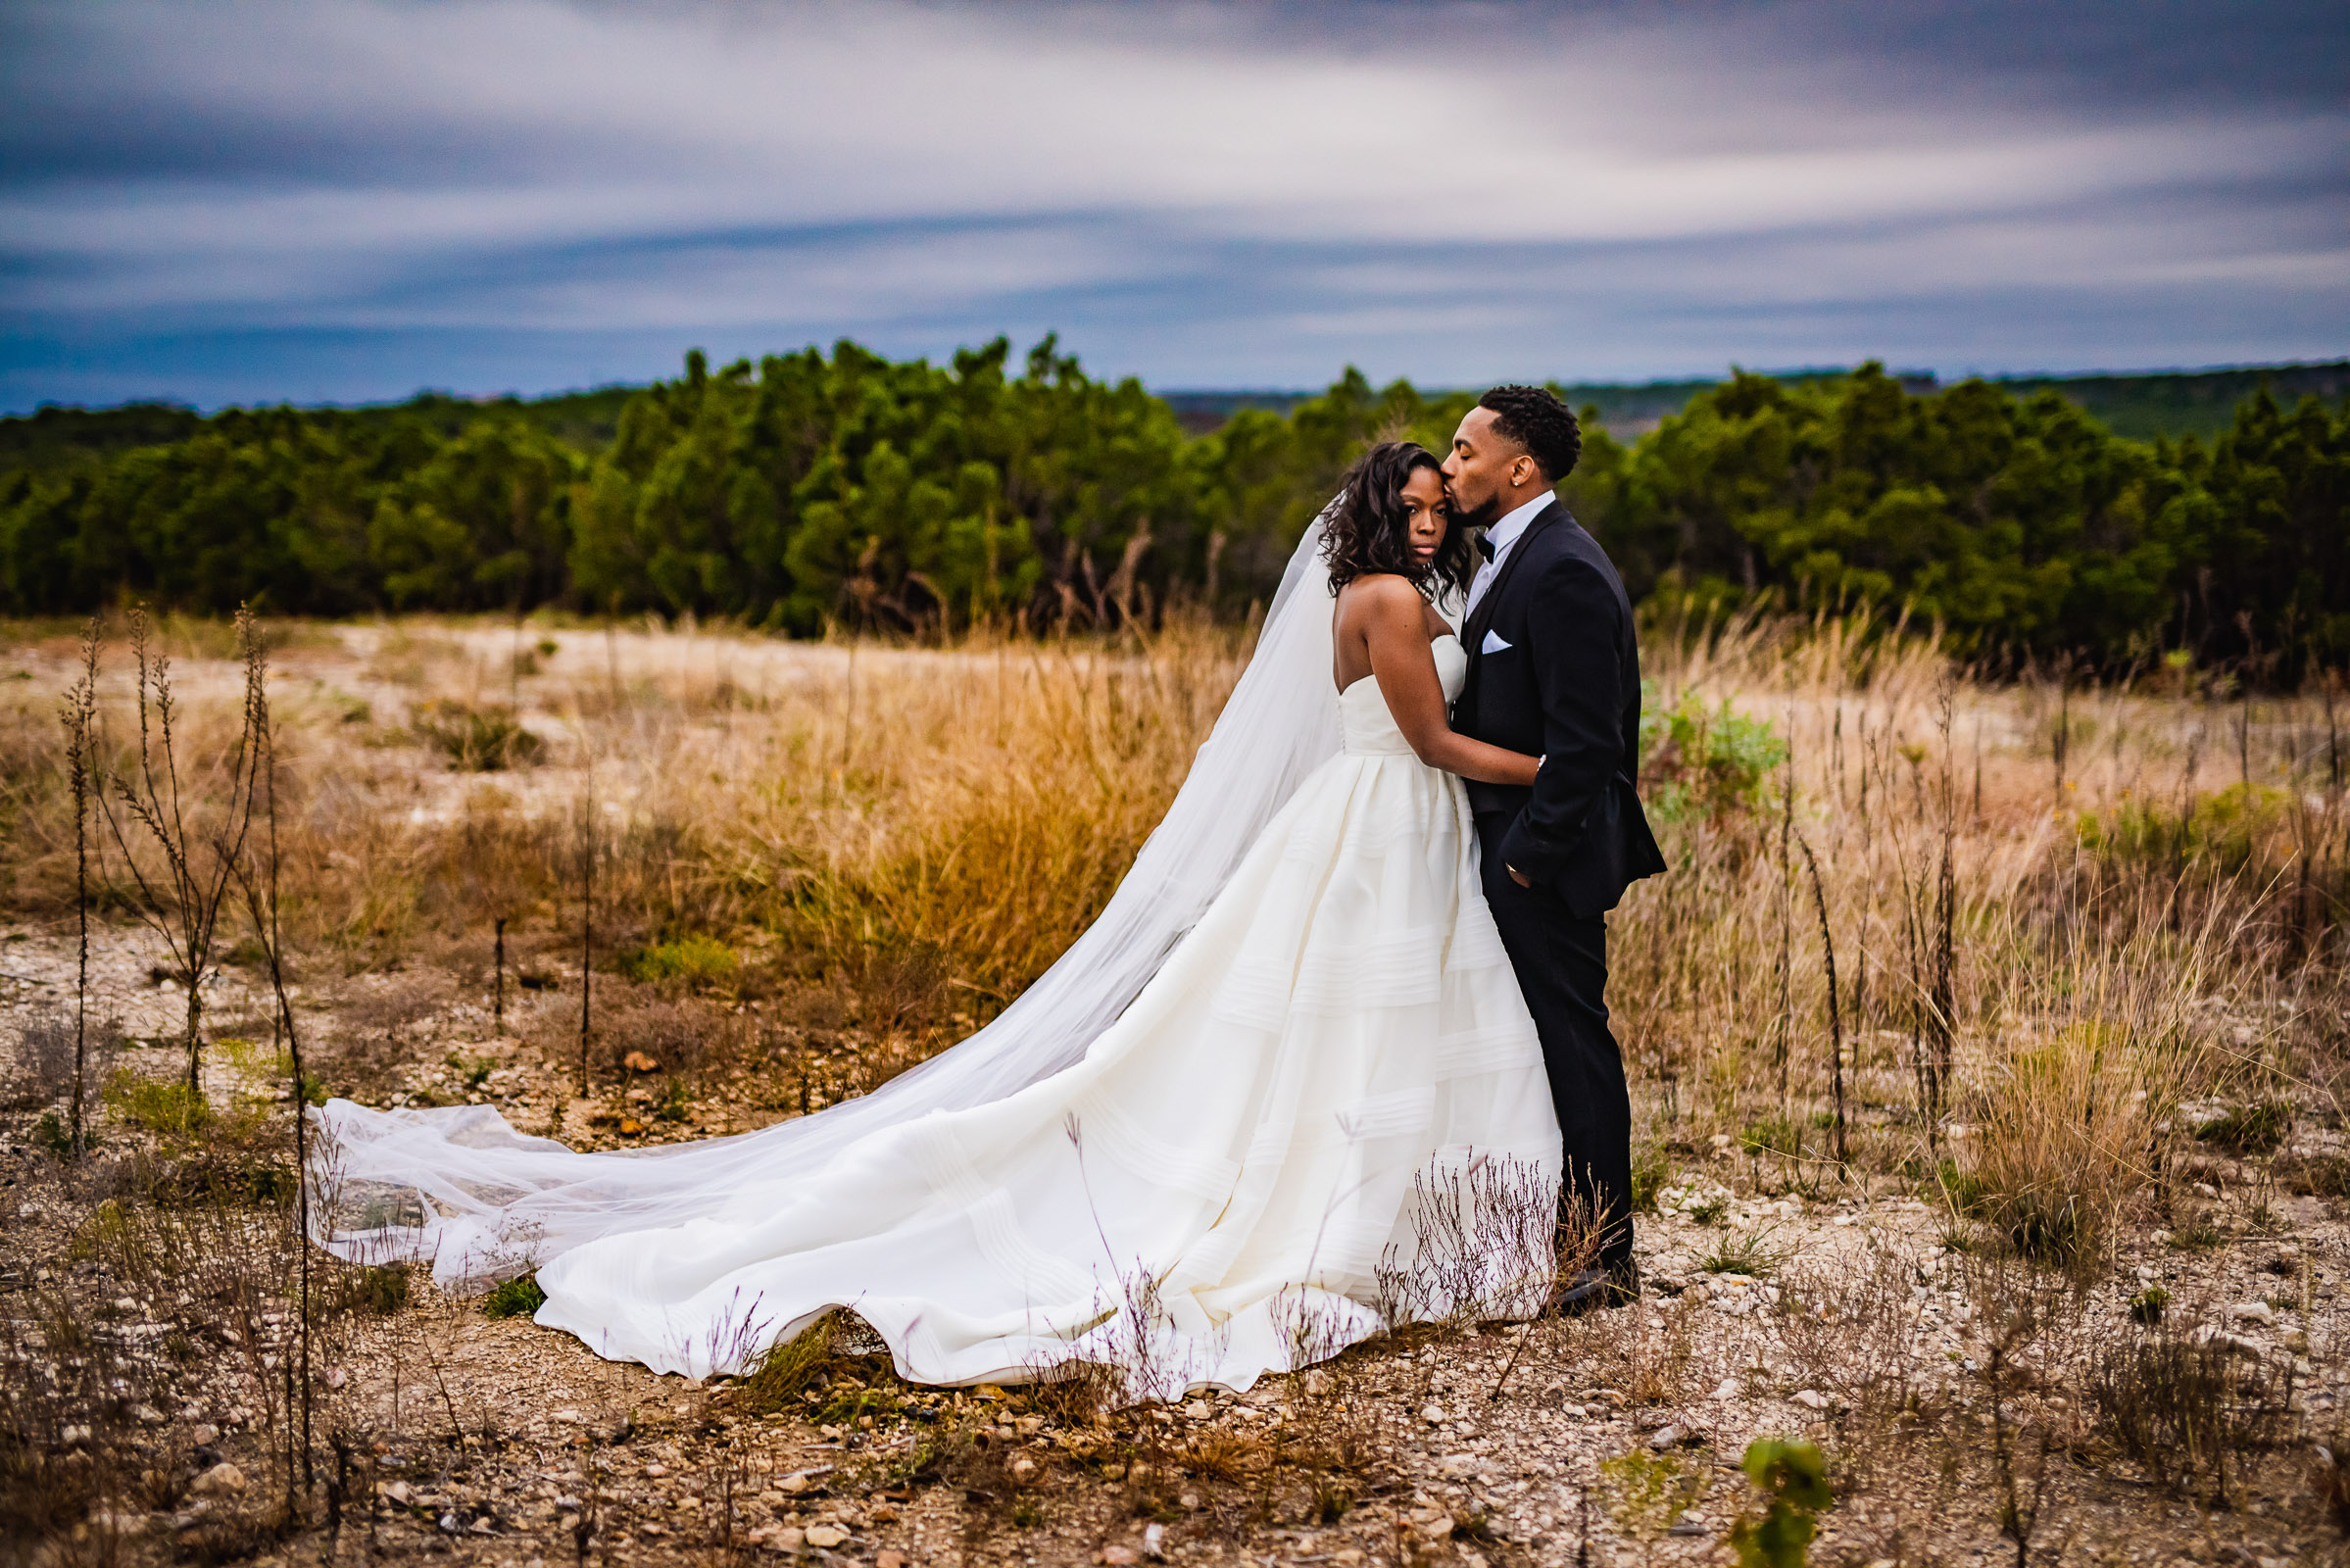 Dallas Wedding Photograper 1 (5 of 7)